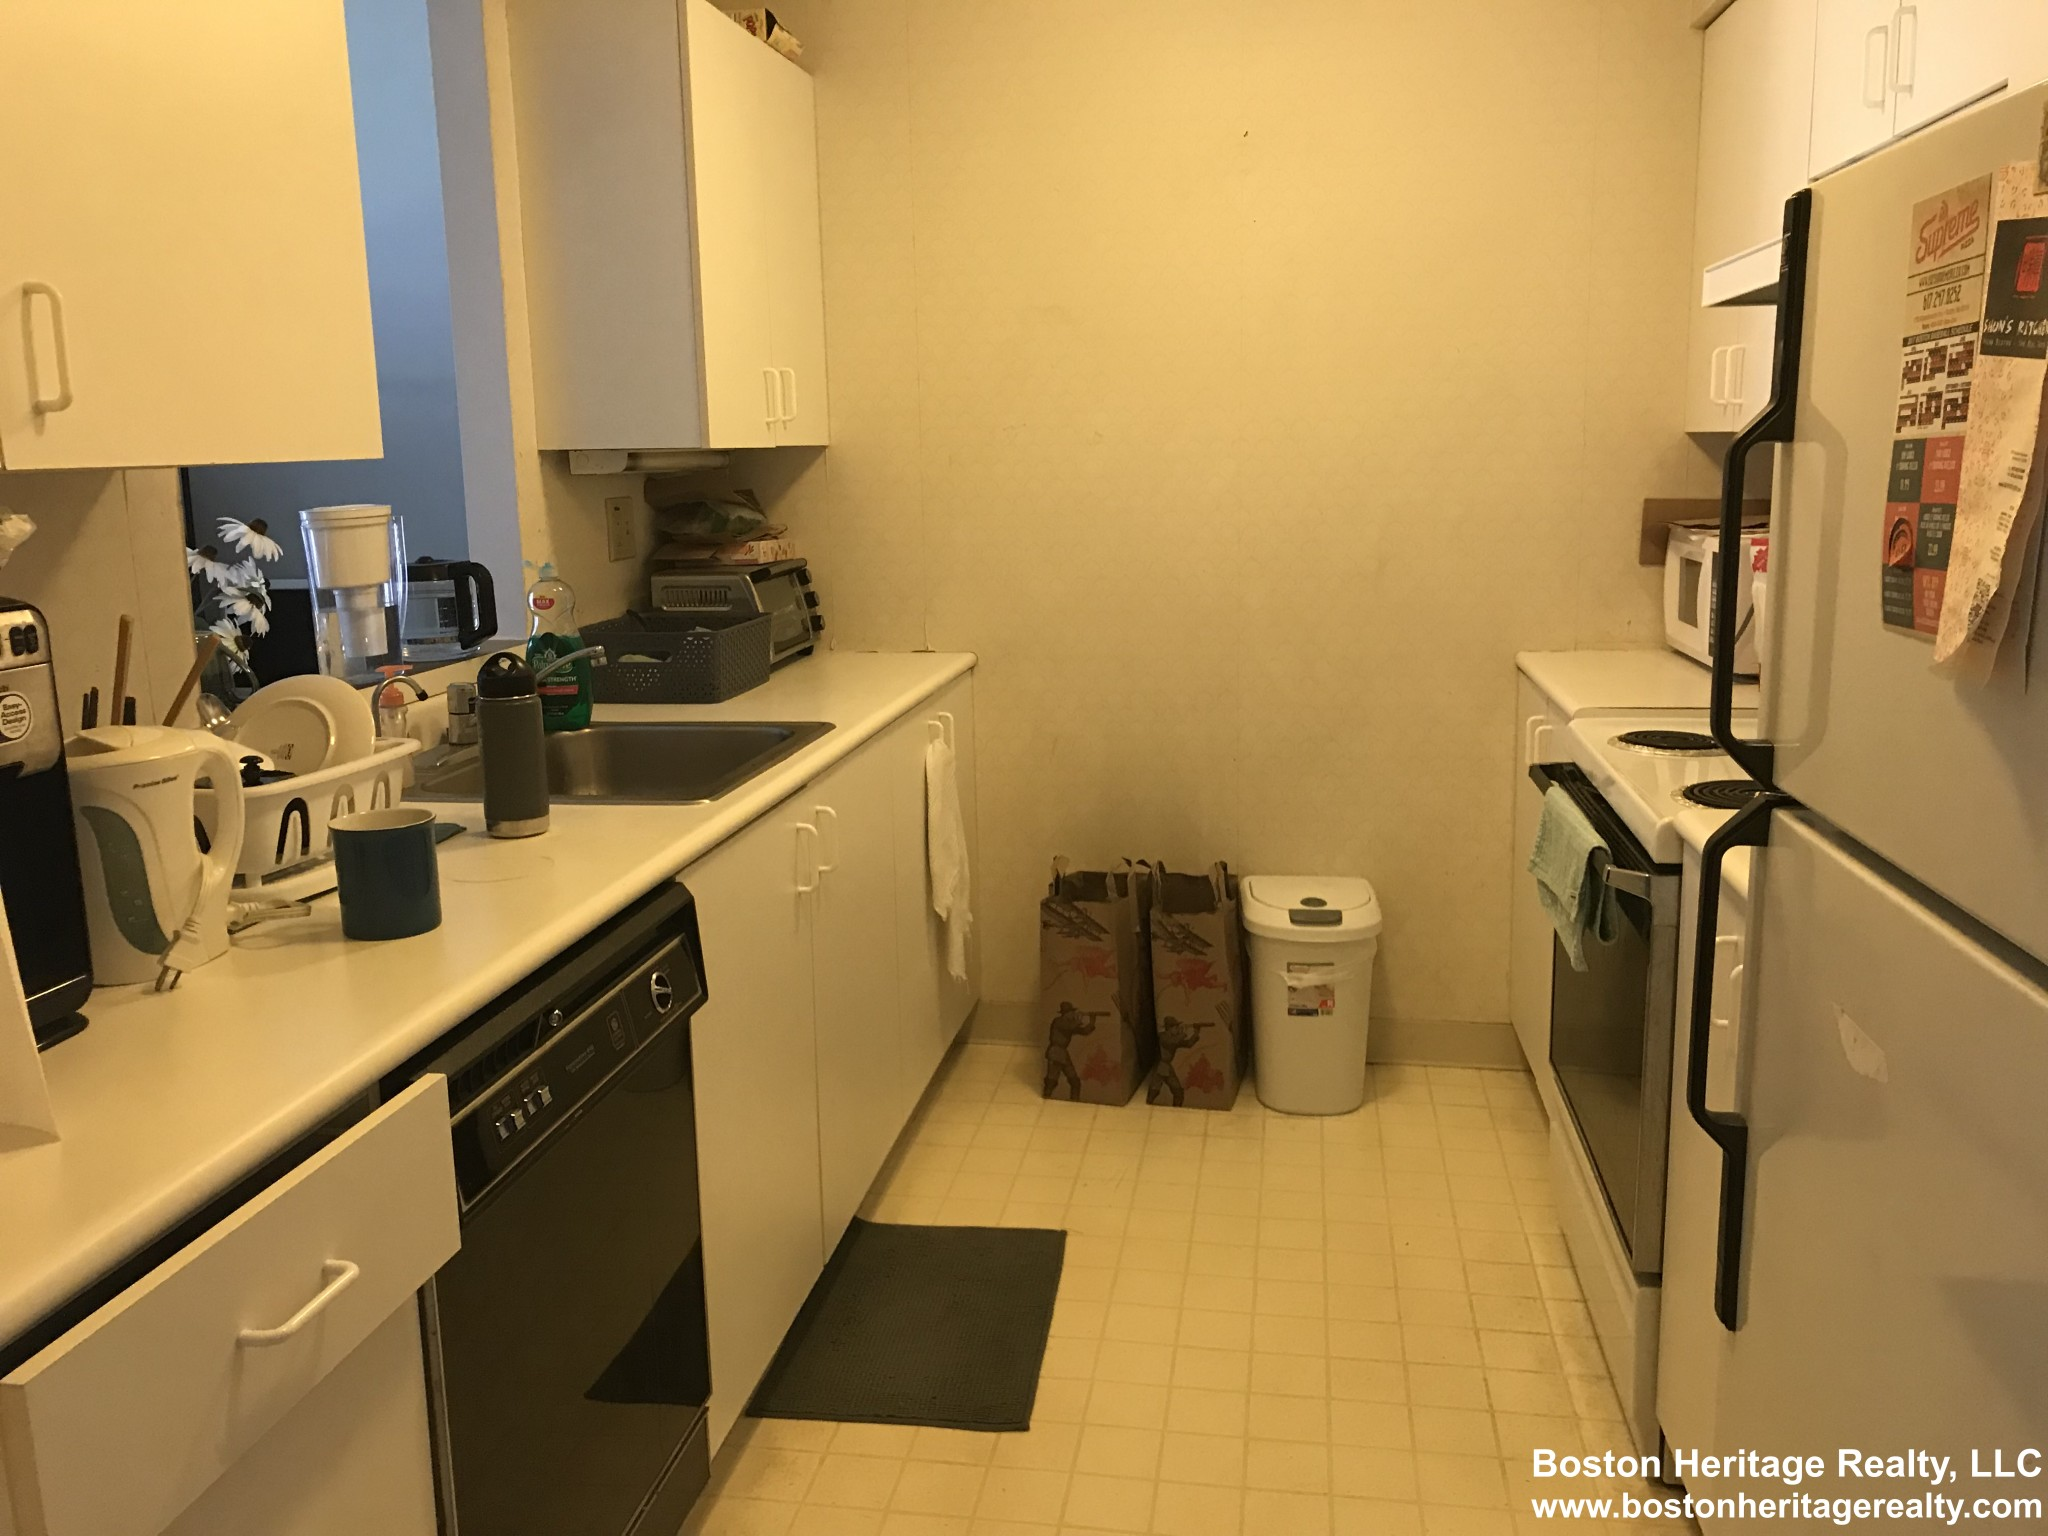 1 Bed, 1 Bath apartment in Boston, South End for $2,250